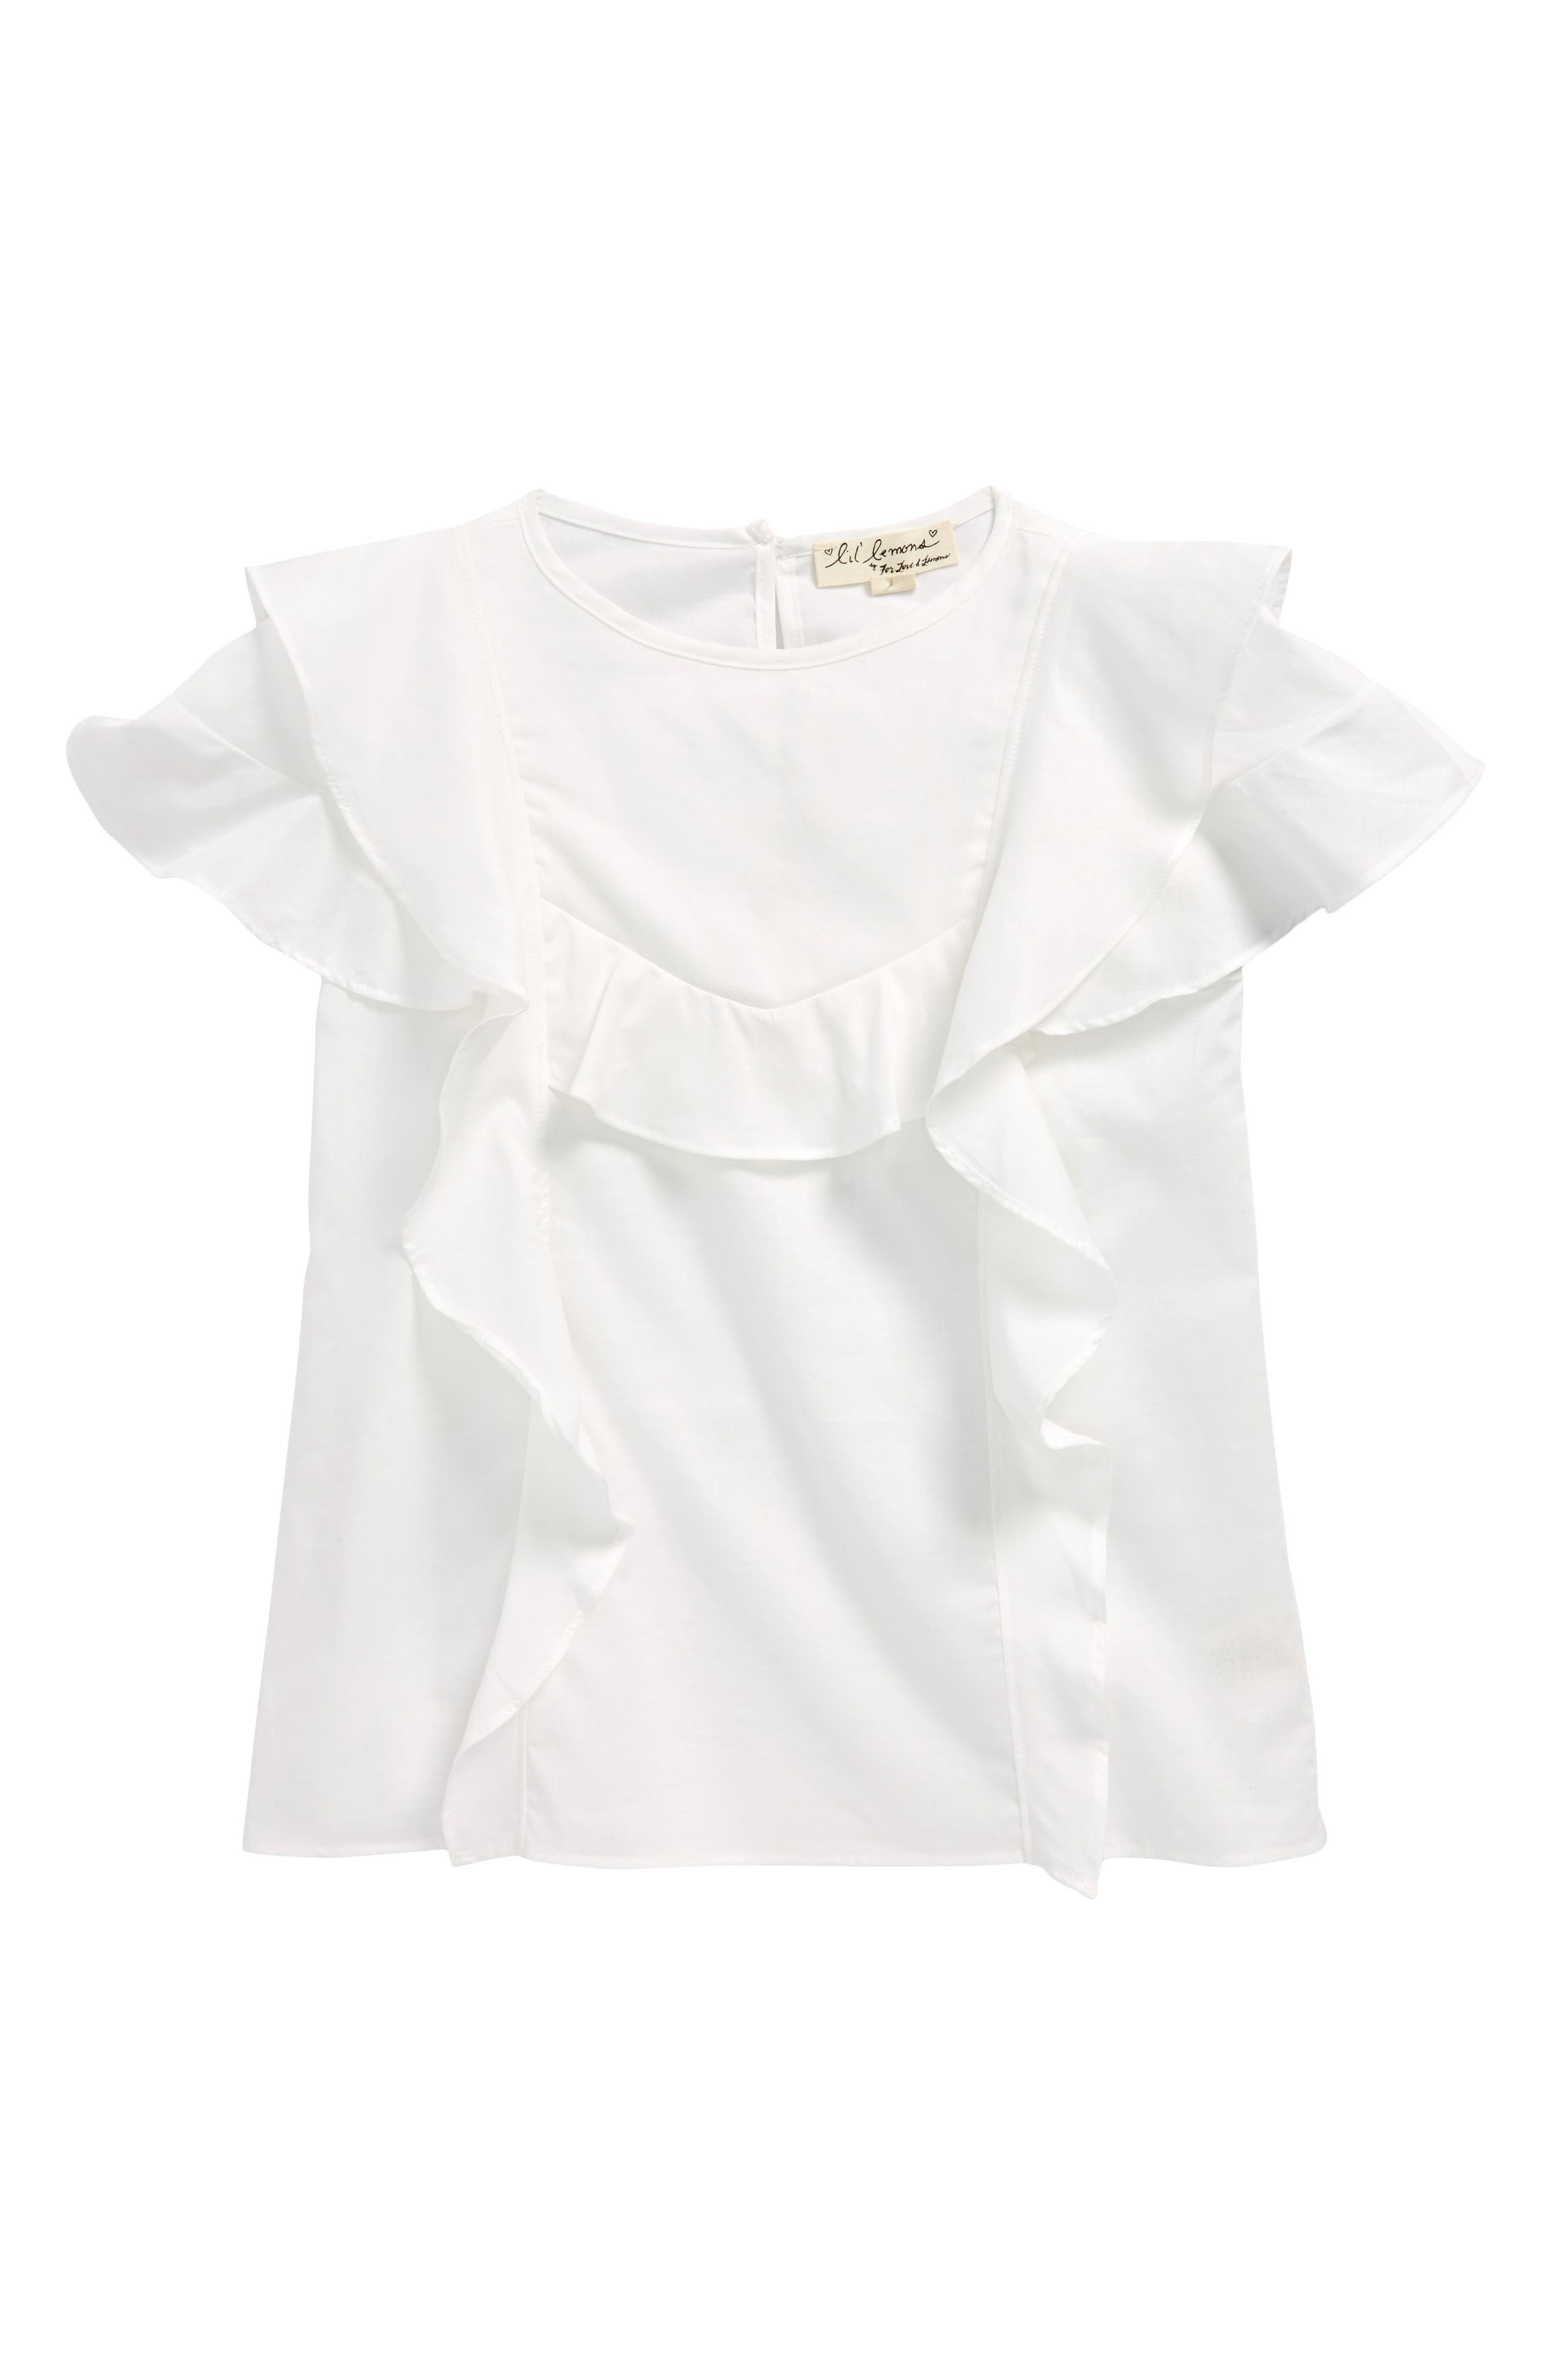 Lily Ruffle Blouse,                         Main,                         color, White